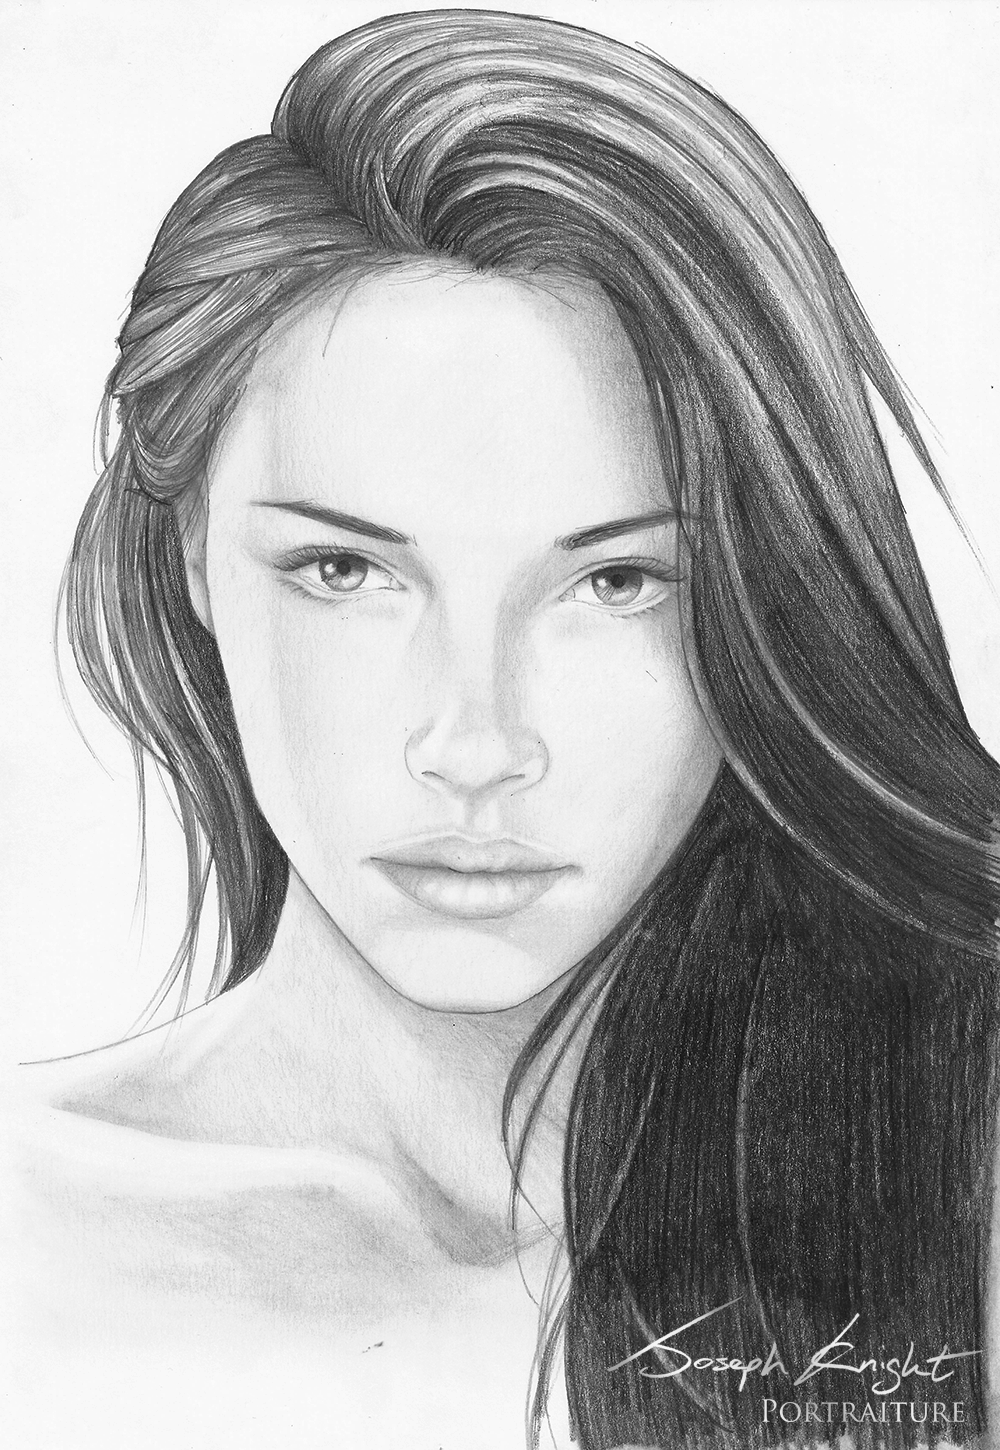 10 Years Of Progress Learning To Draw R Art Sketches Of Girls Faces Girl Sketch Images Girl Sketch